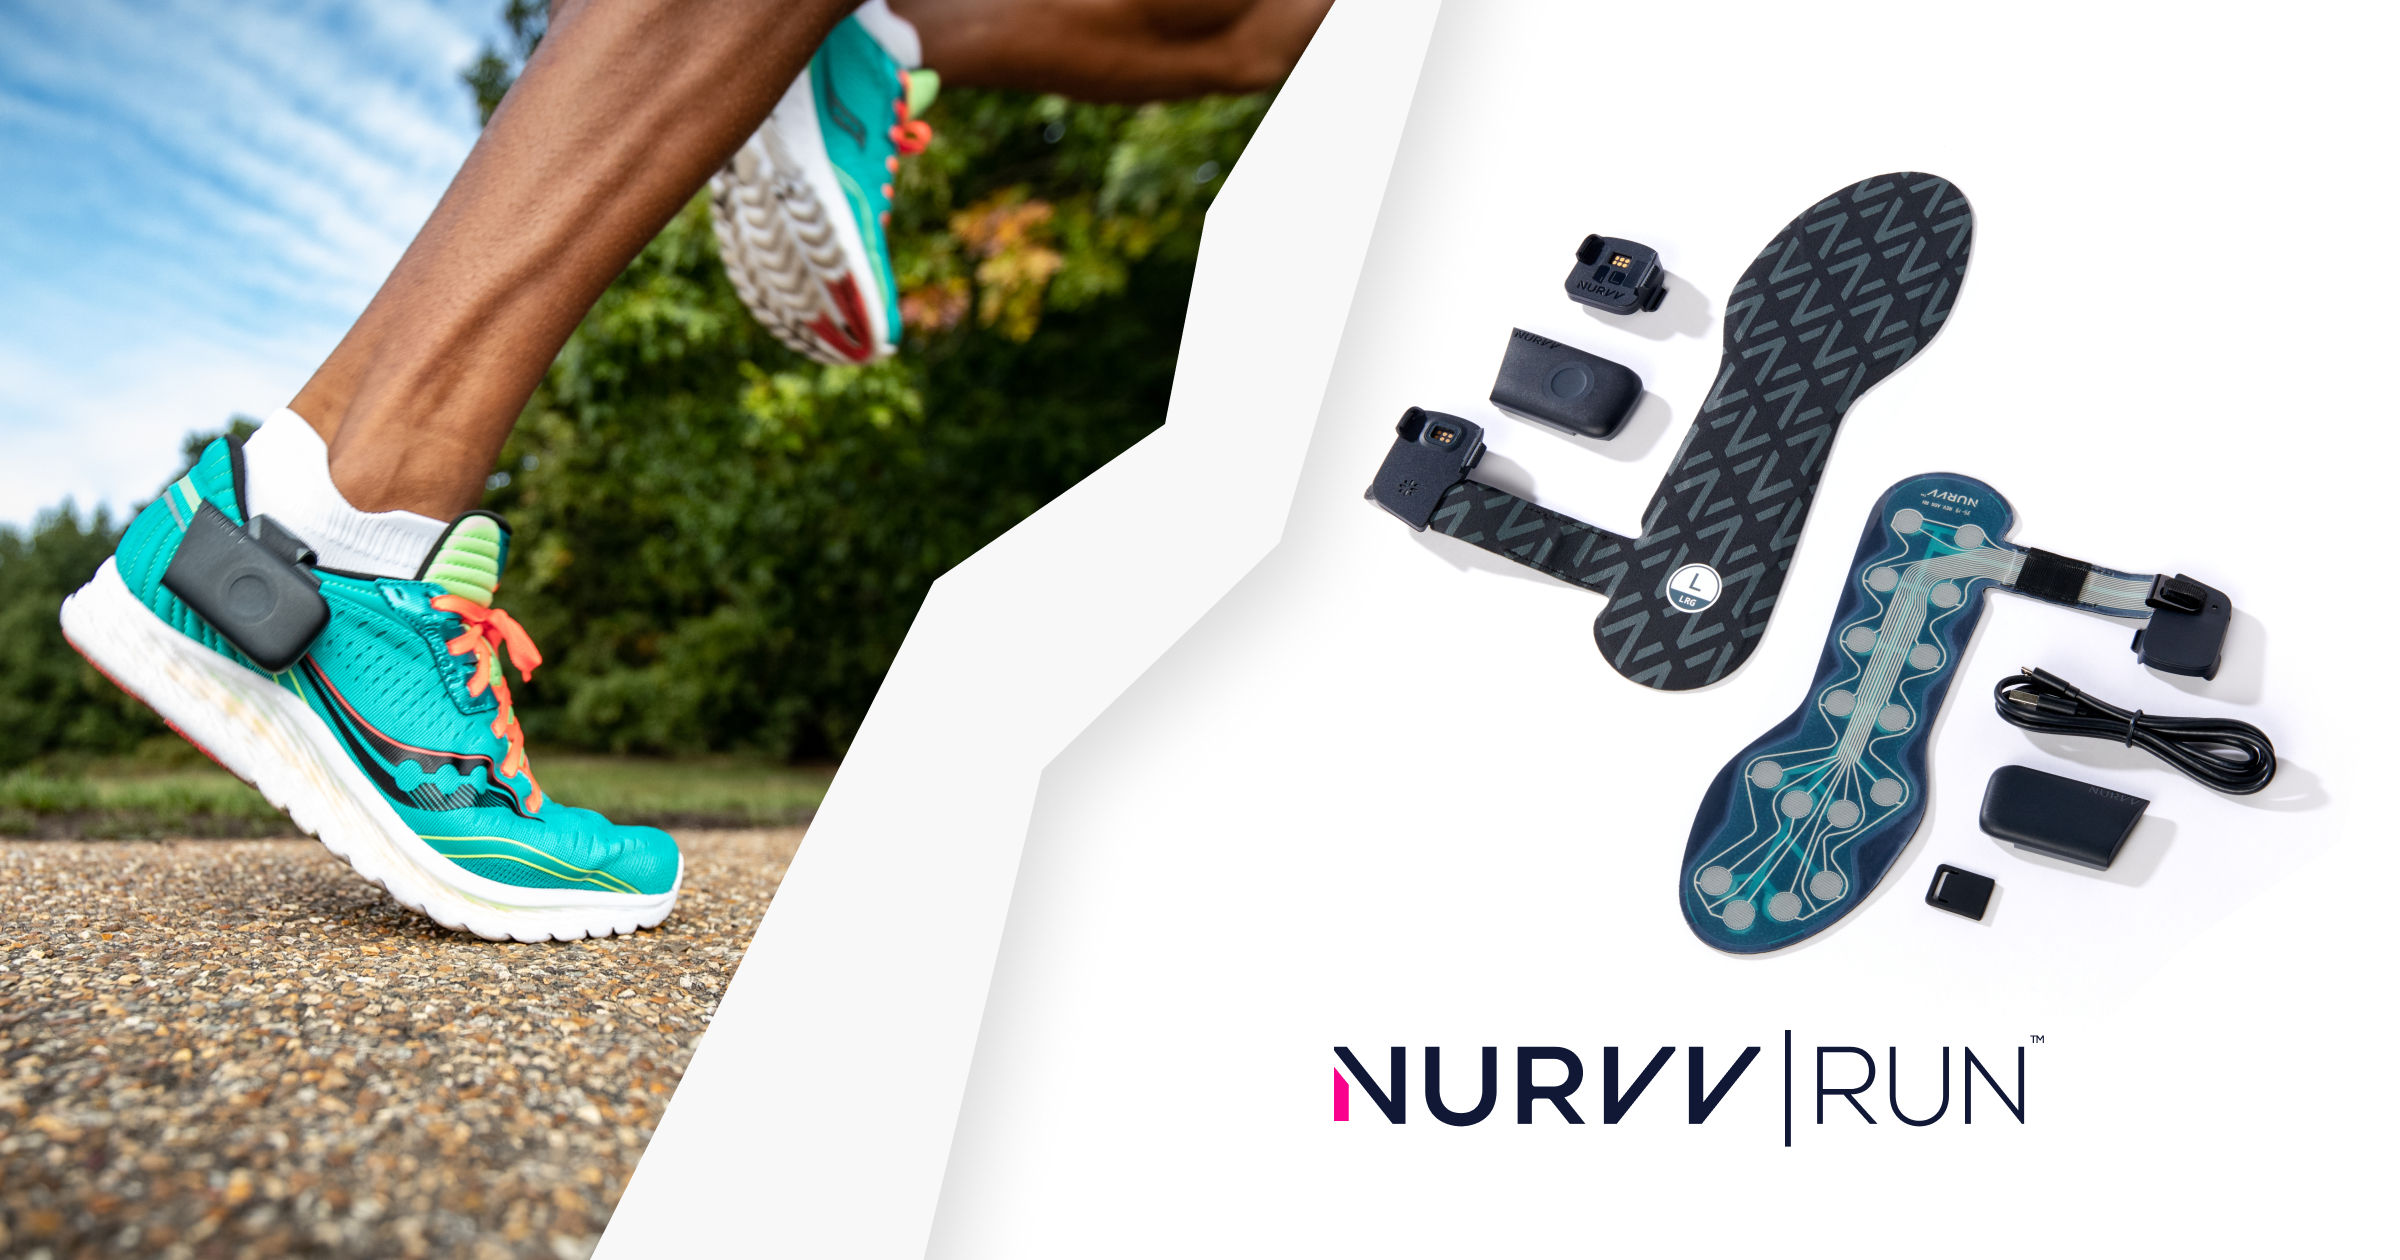 photo of Review: Nurrv Run delivers elite data through iPhone and Apple Watch image